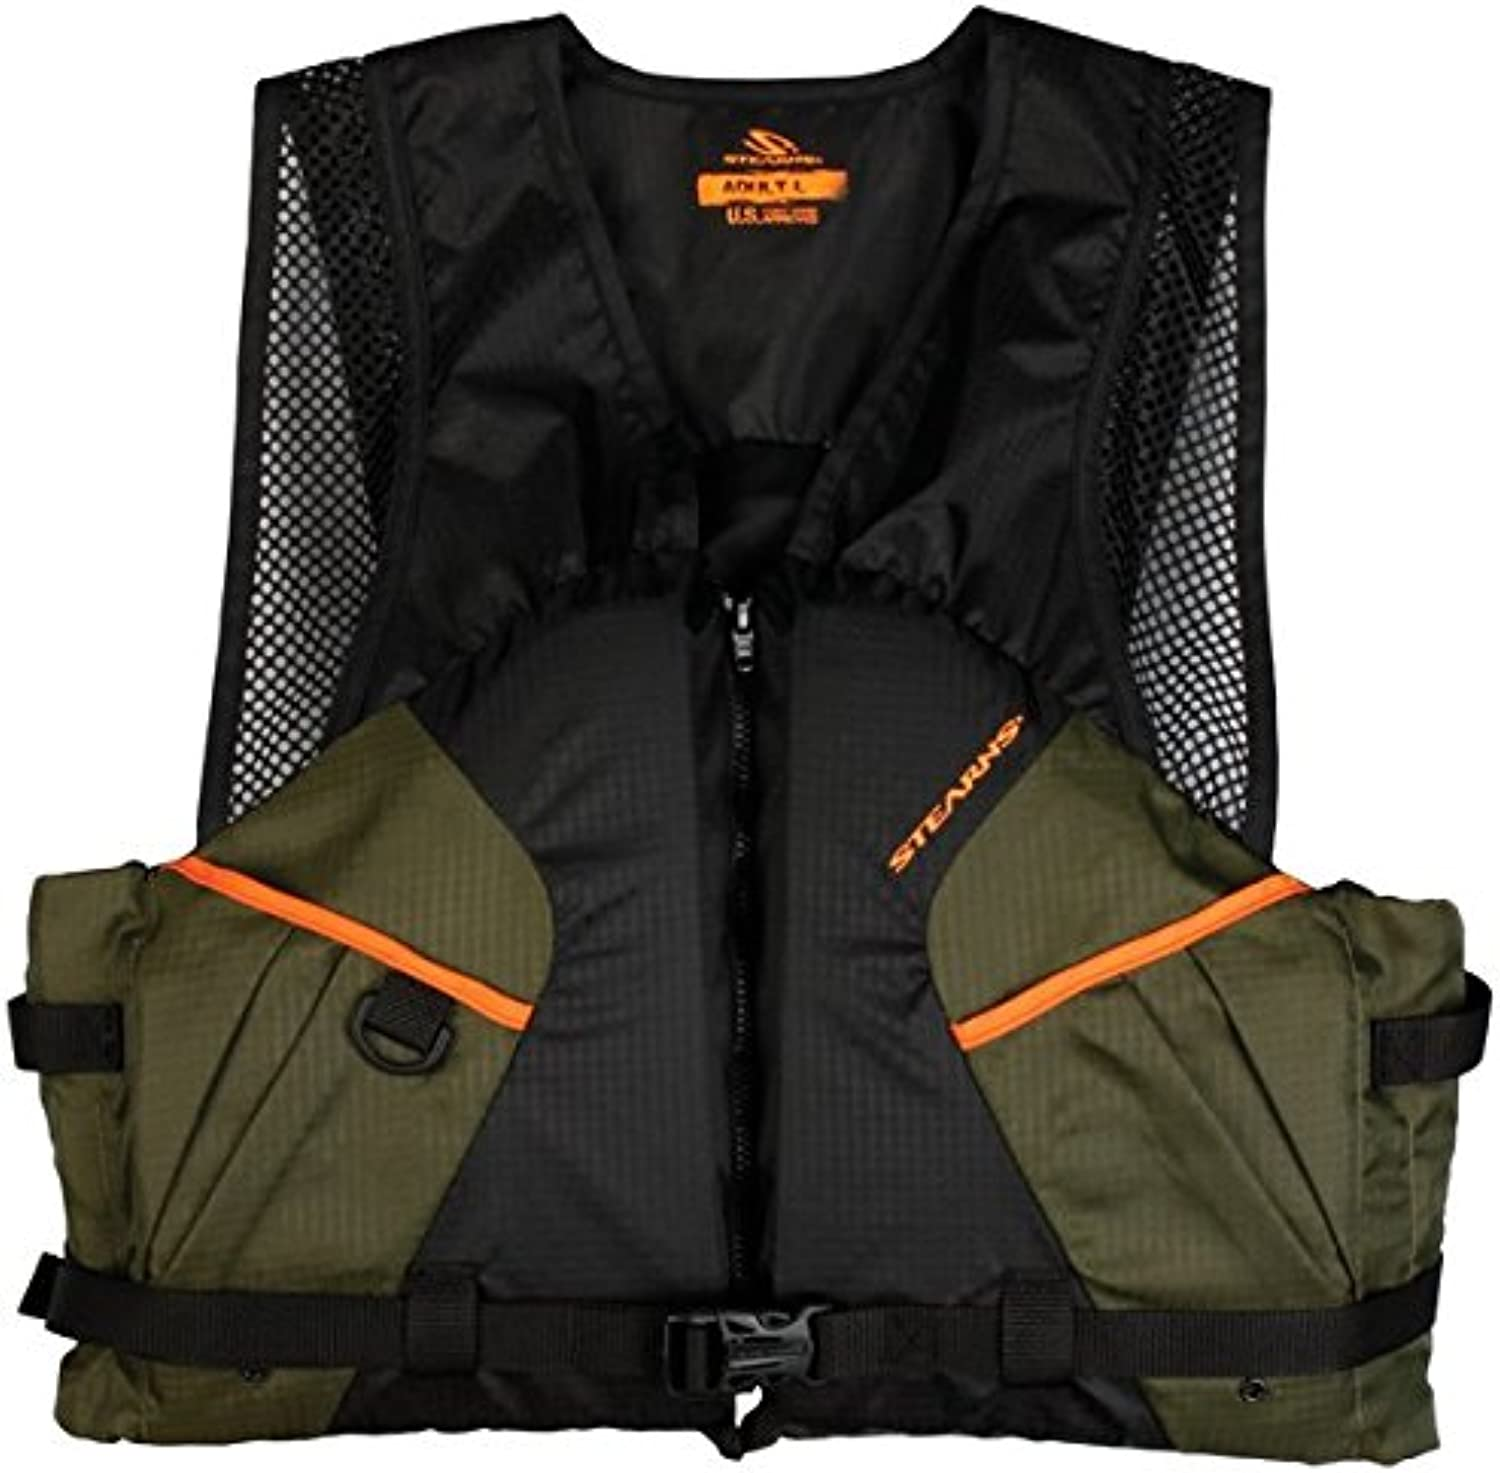 Stearns PFD C2220 Adult Nylon VestLarge